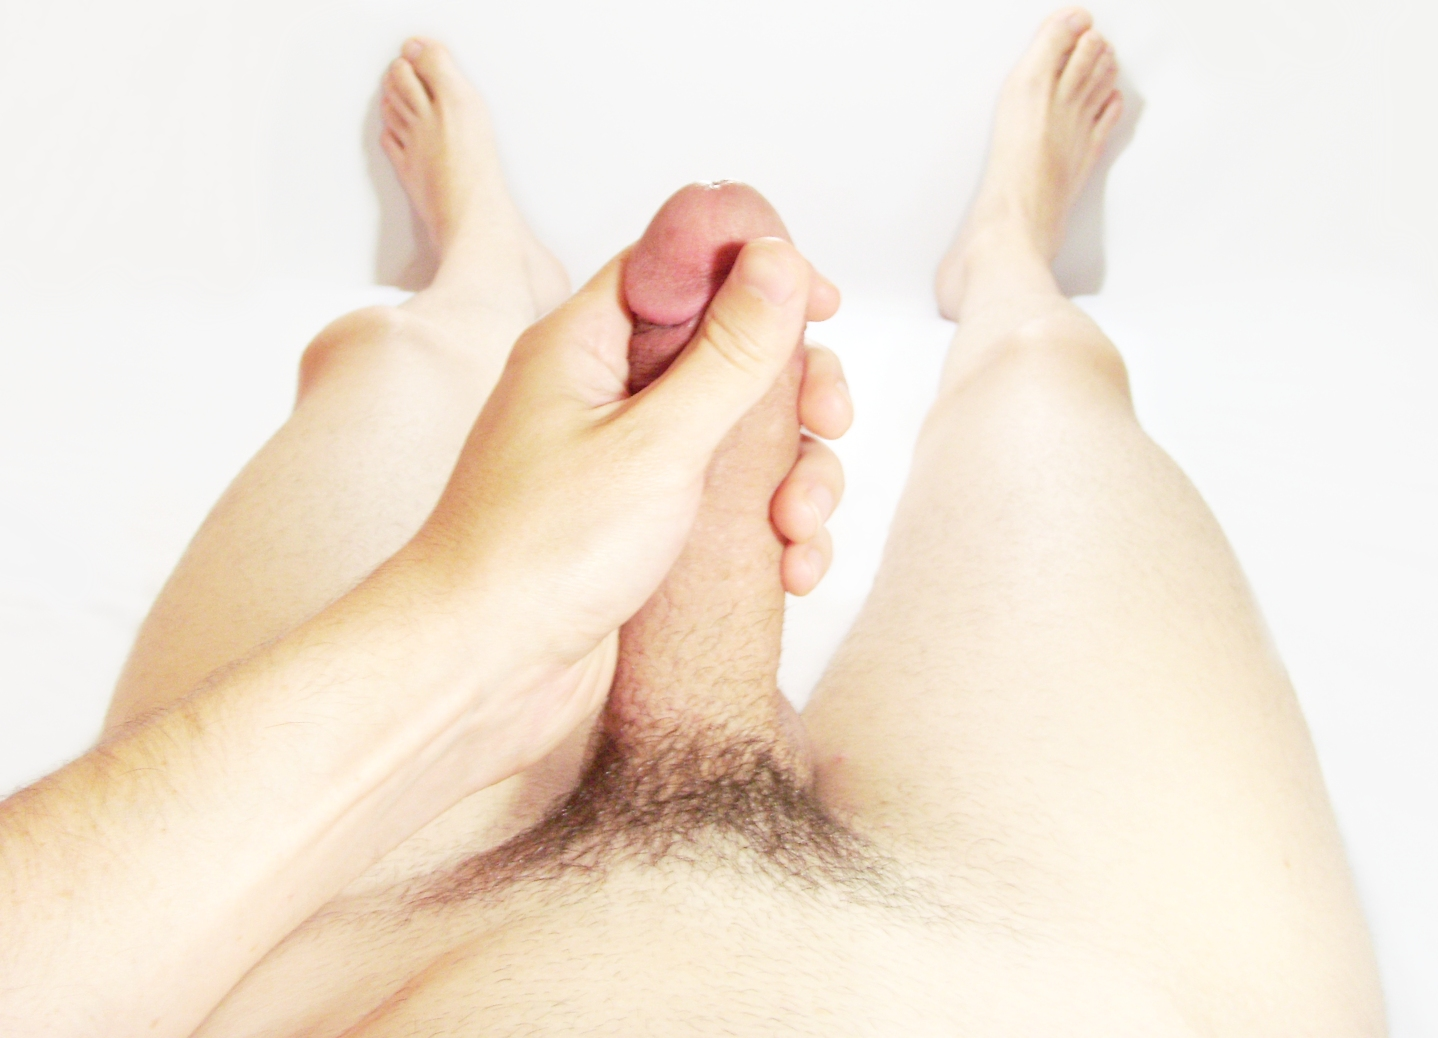 masturbation techniques male Self